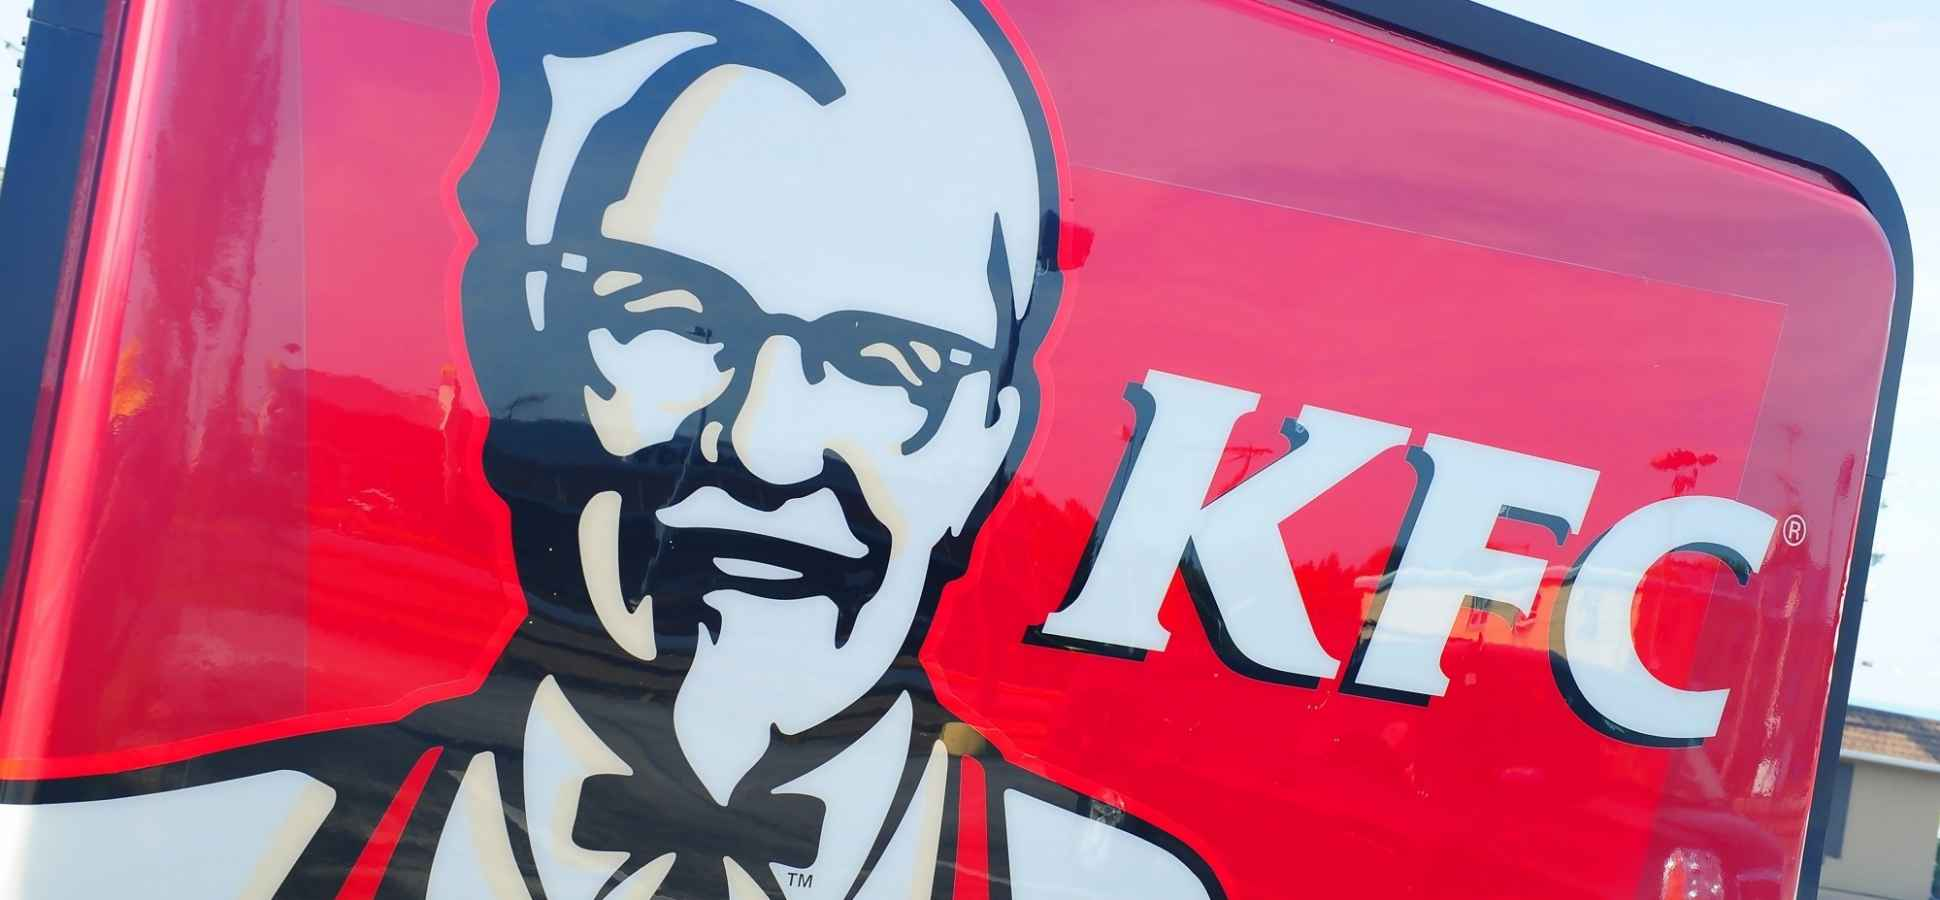 KFC Has Just Gone Into a Business Area That Will Surely Lead to Tears